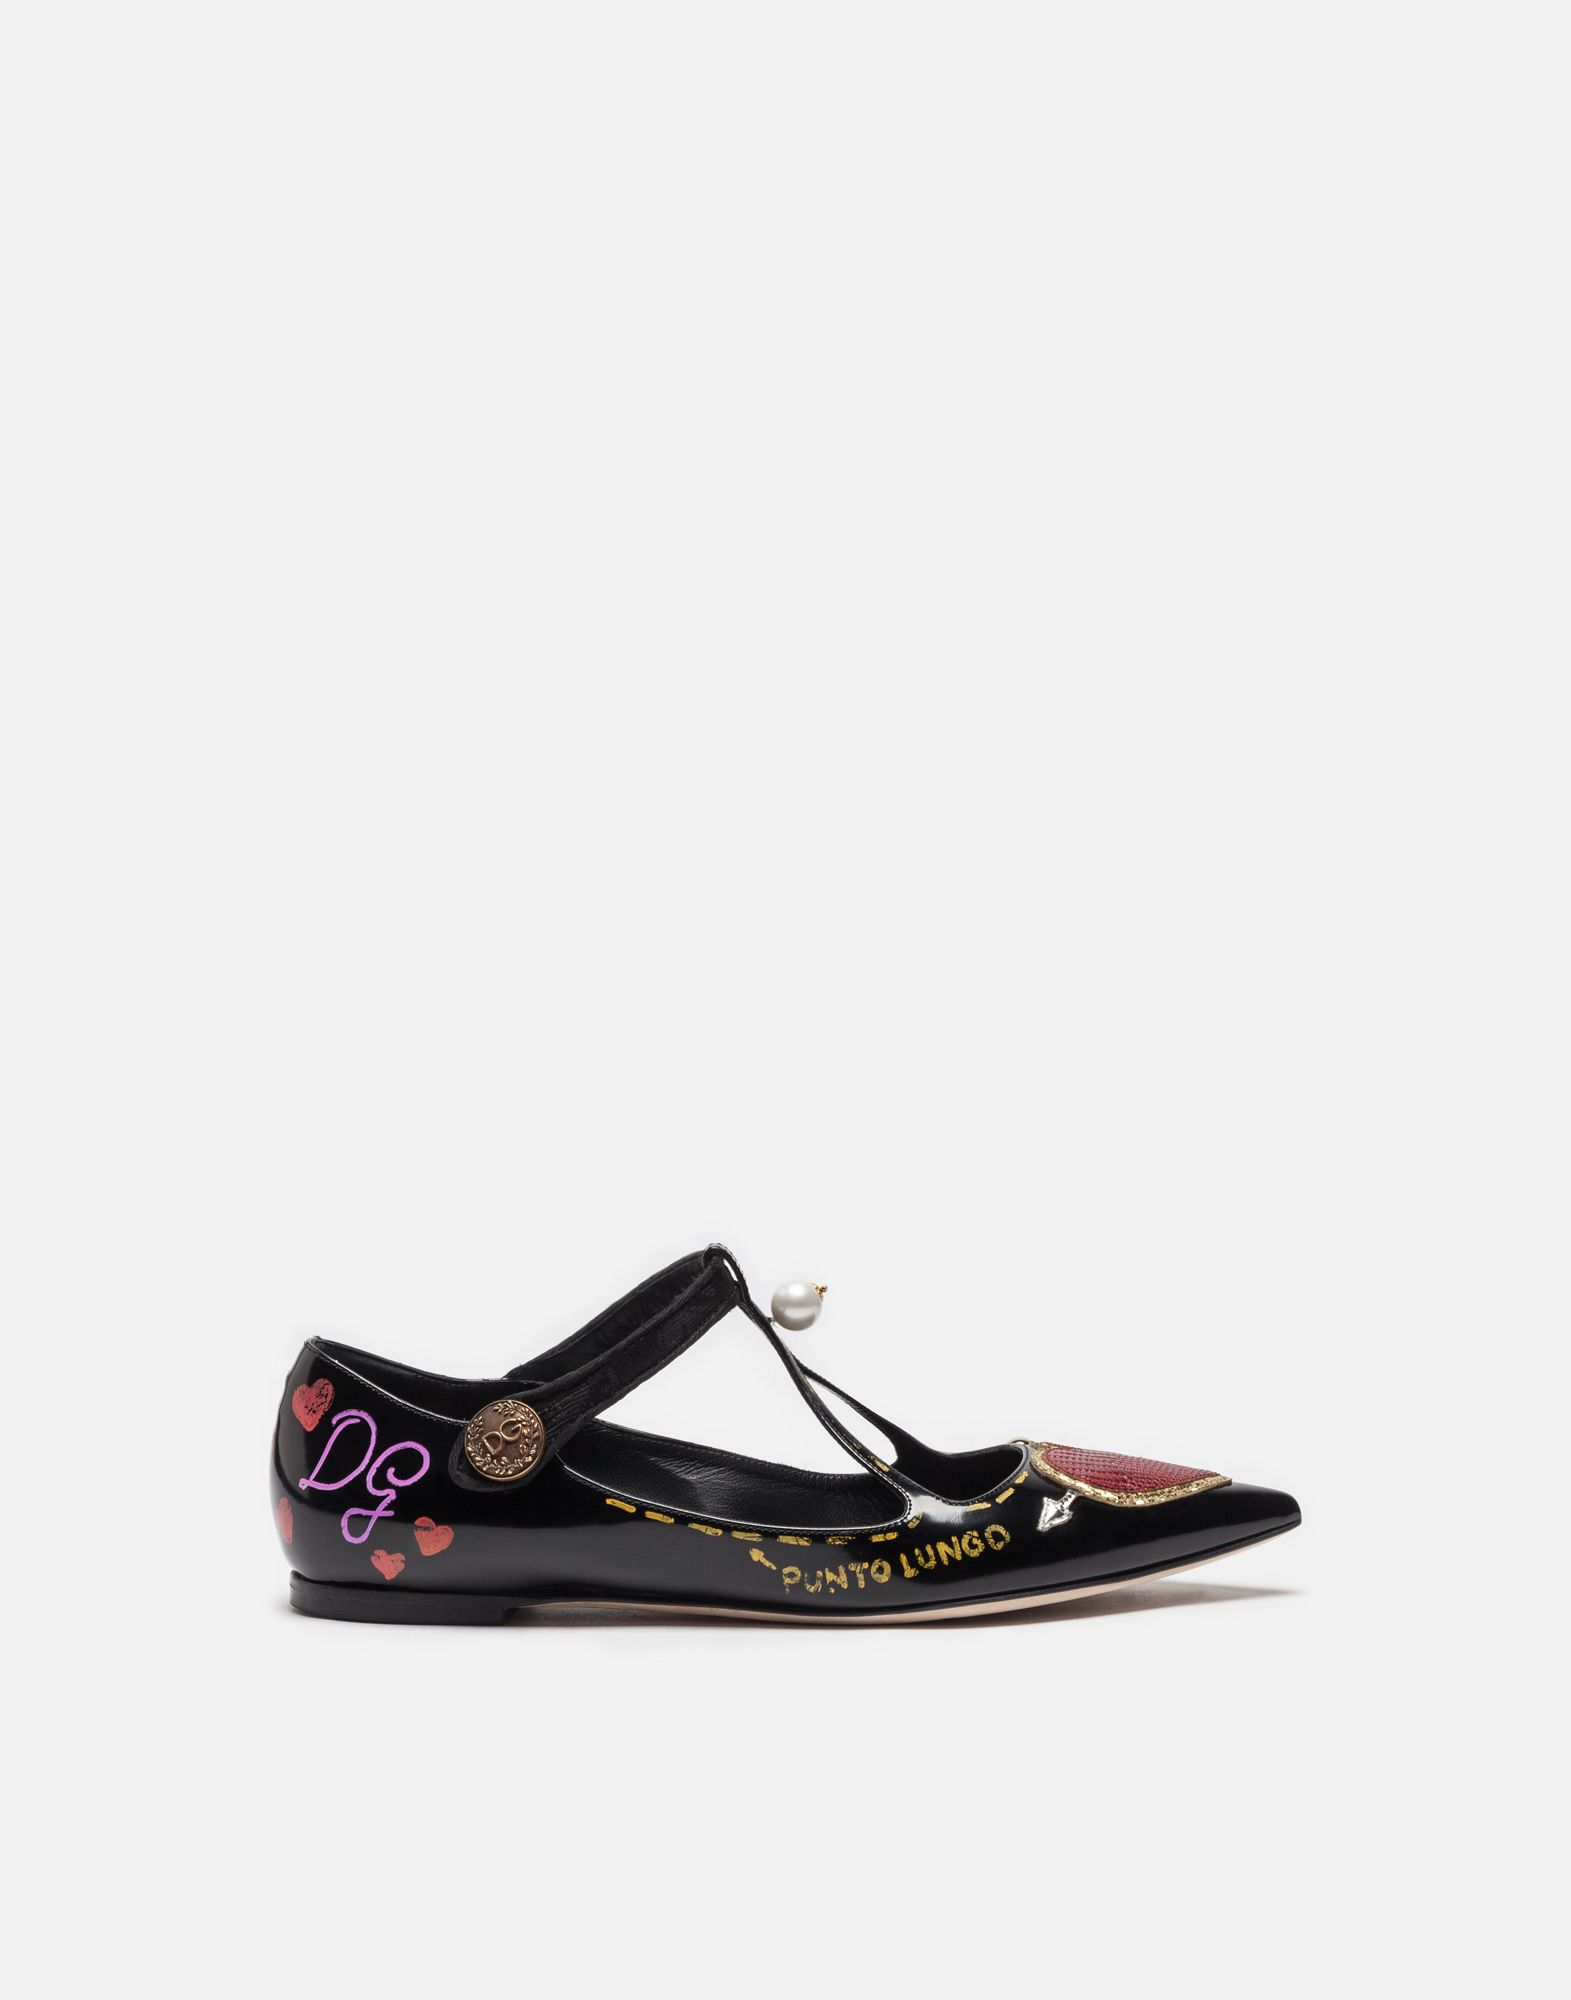 DOLCE & GABBANA | PRINTED LEATHER BALLET FLATS WITH APPLIQUÉ #Shoes # Slippers and Derby